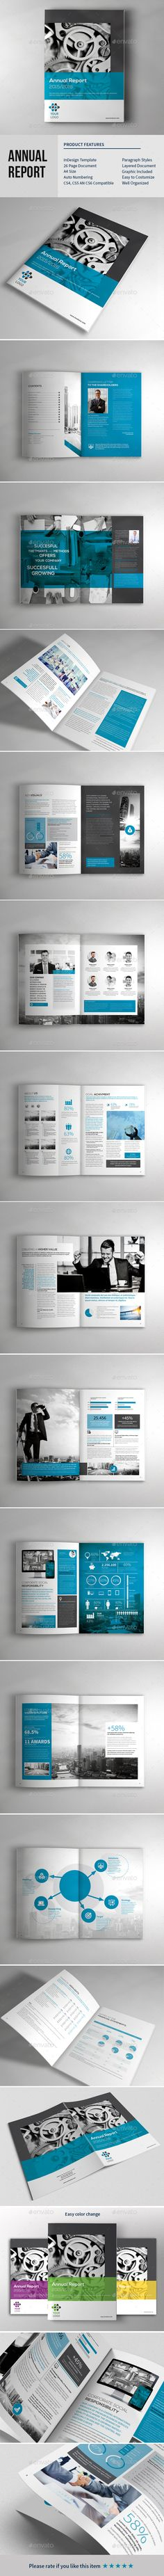 Annual Report Brochure Template InDesign INDD #design Download: http://graphicriver.net/item/annual-report-brochure-template/14115901?ref=ksioks